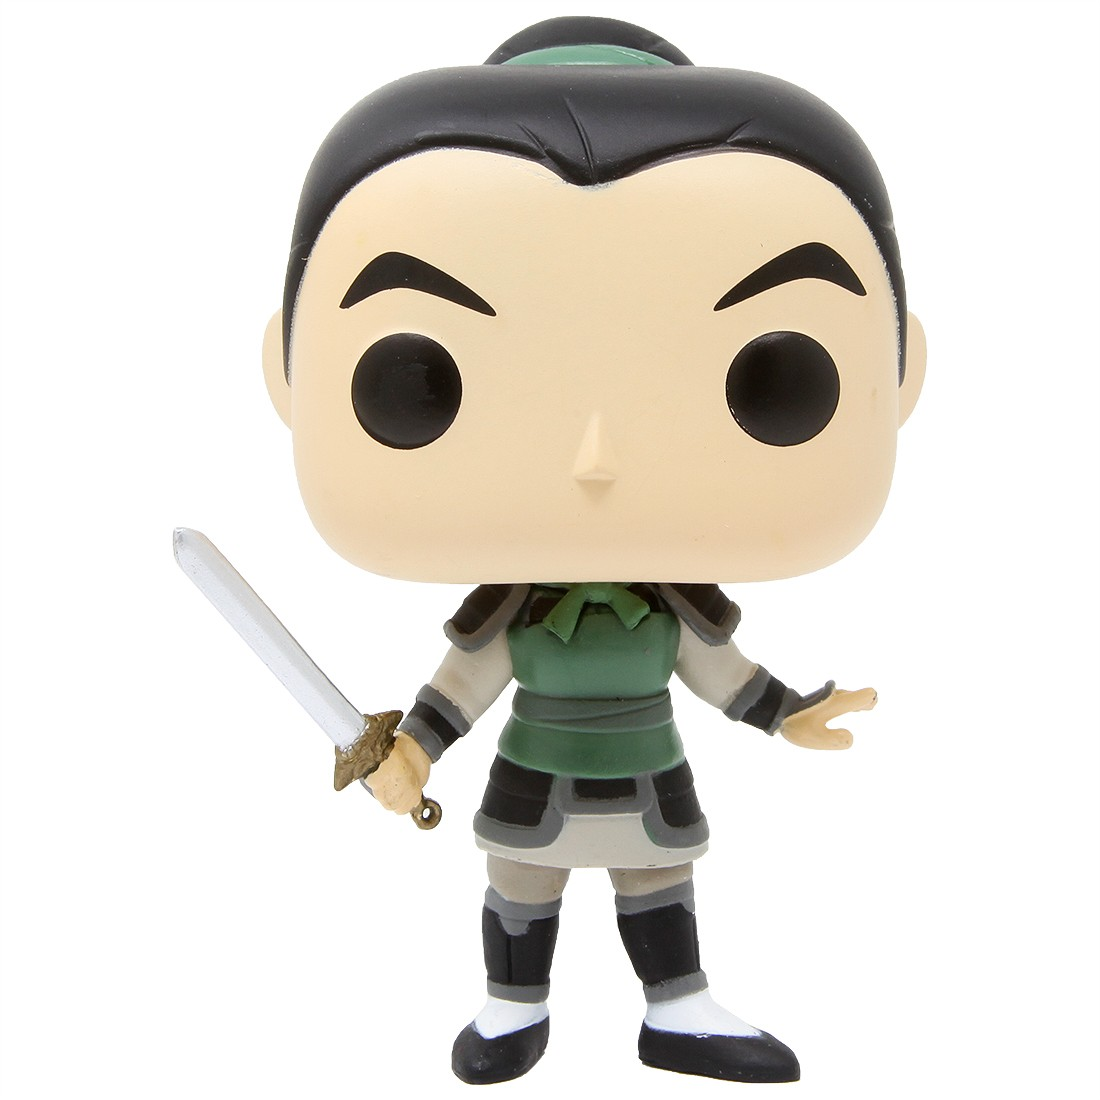 Funko POP Disney Mulan As Ping (tan)